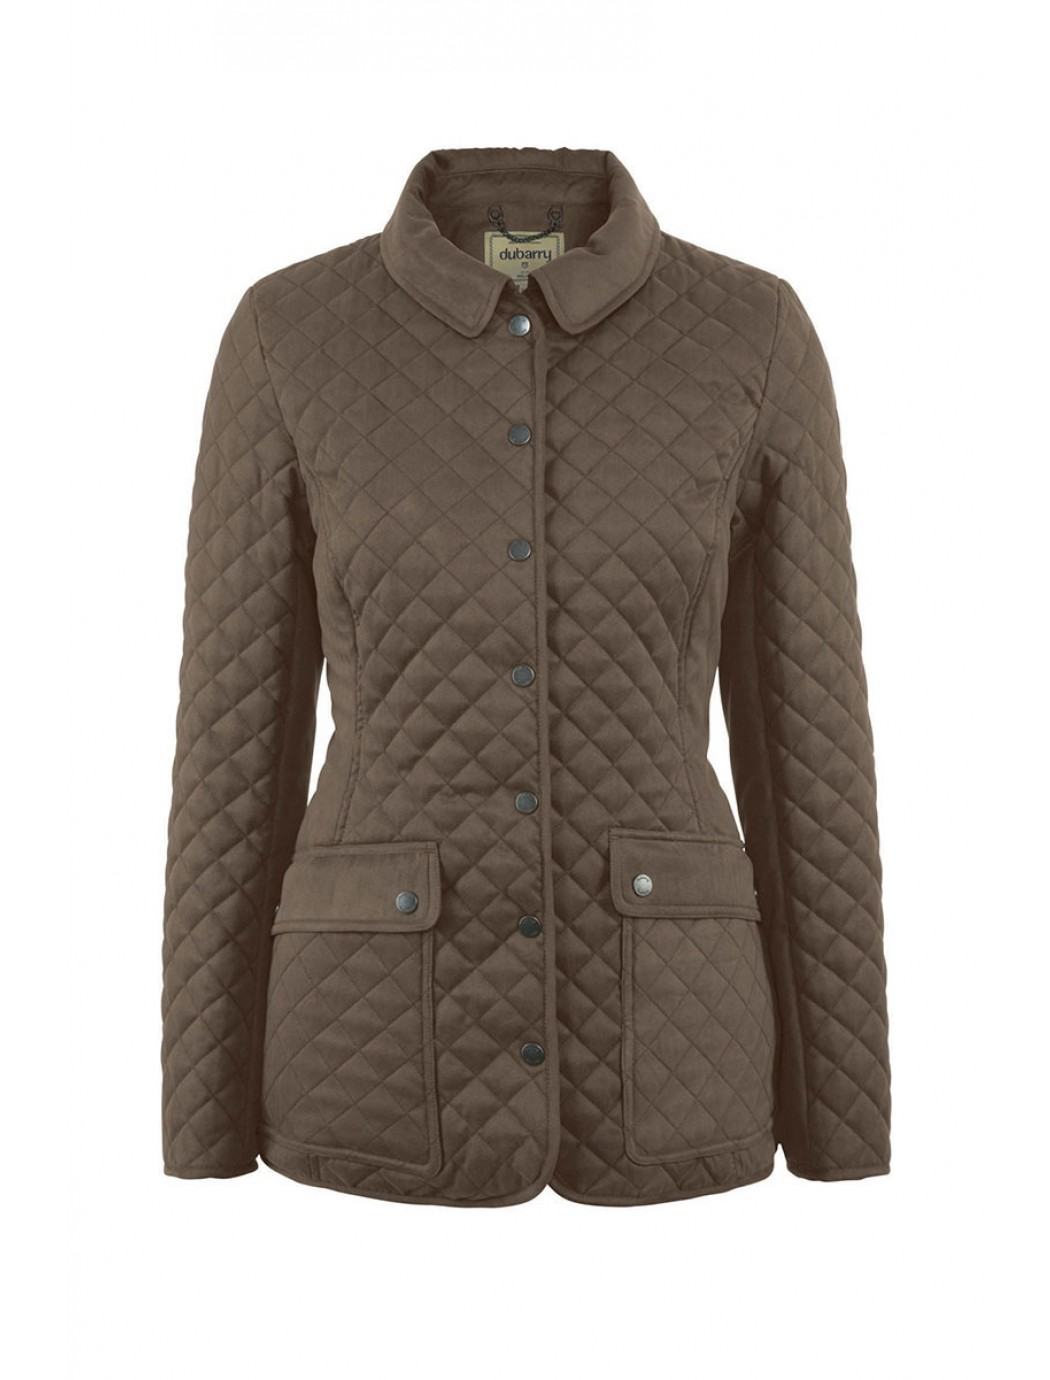 shaw-womens-jackets-olive